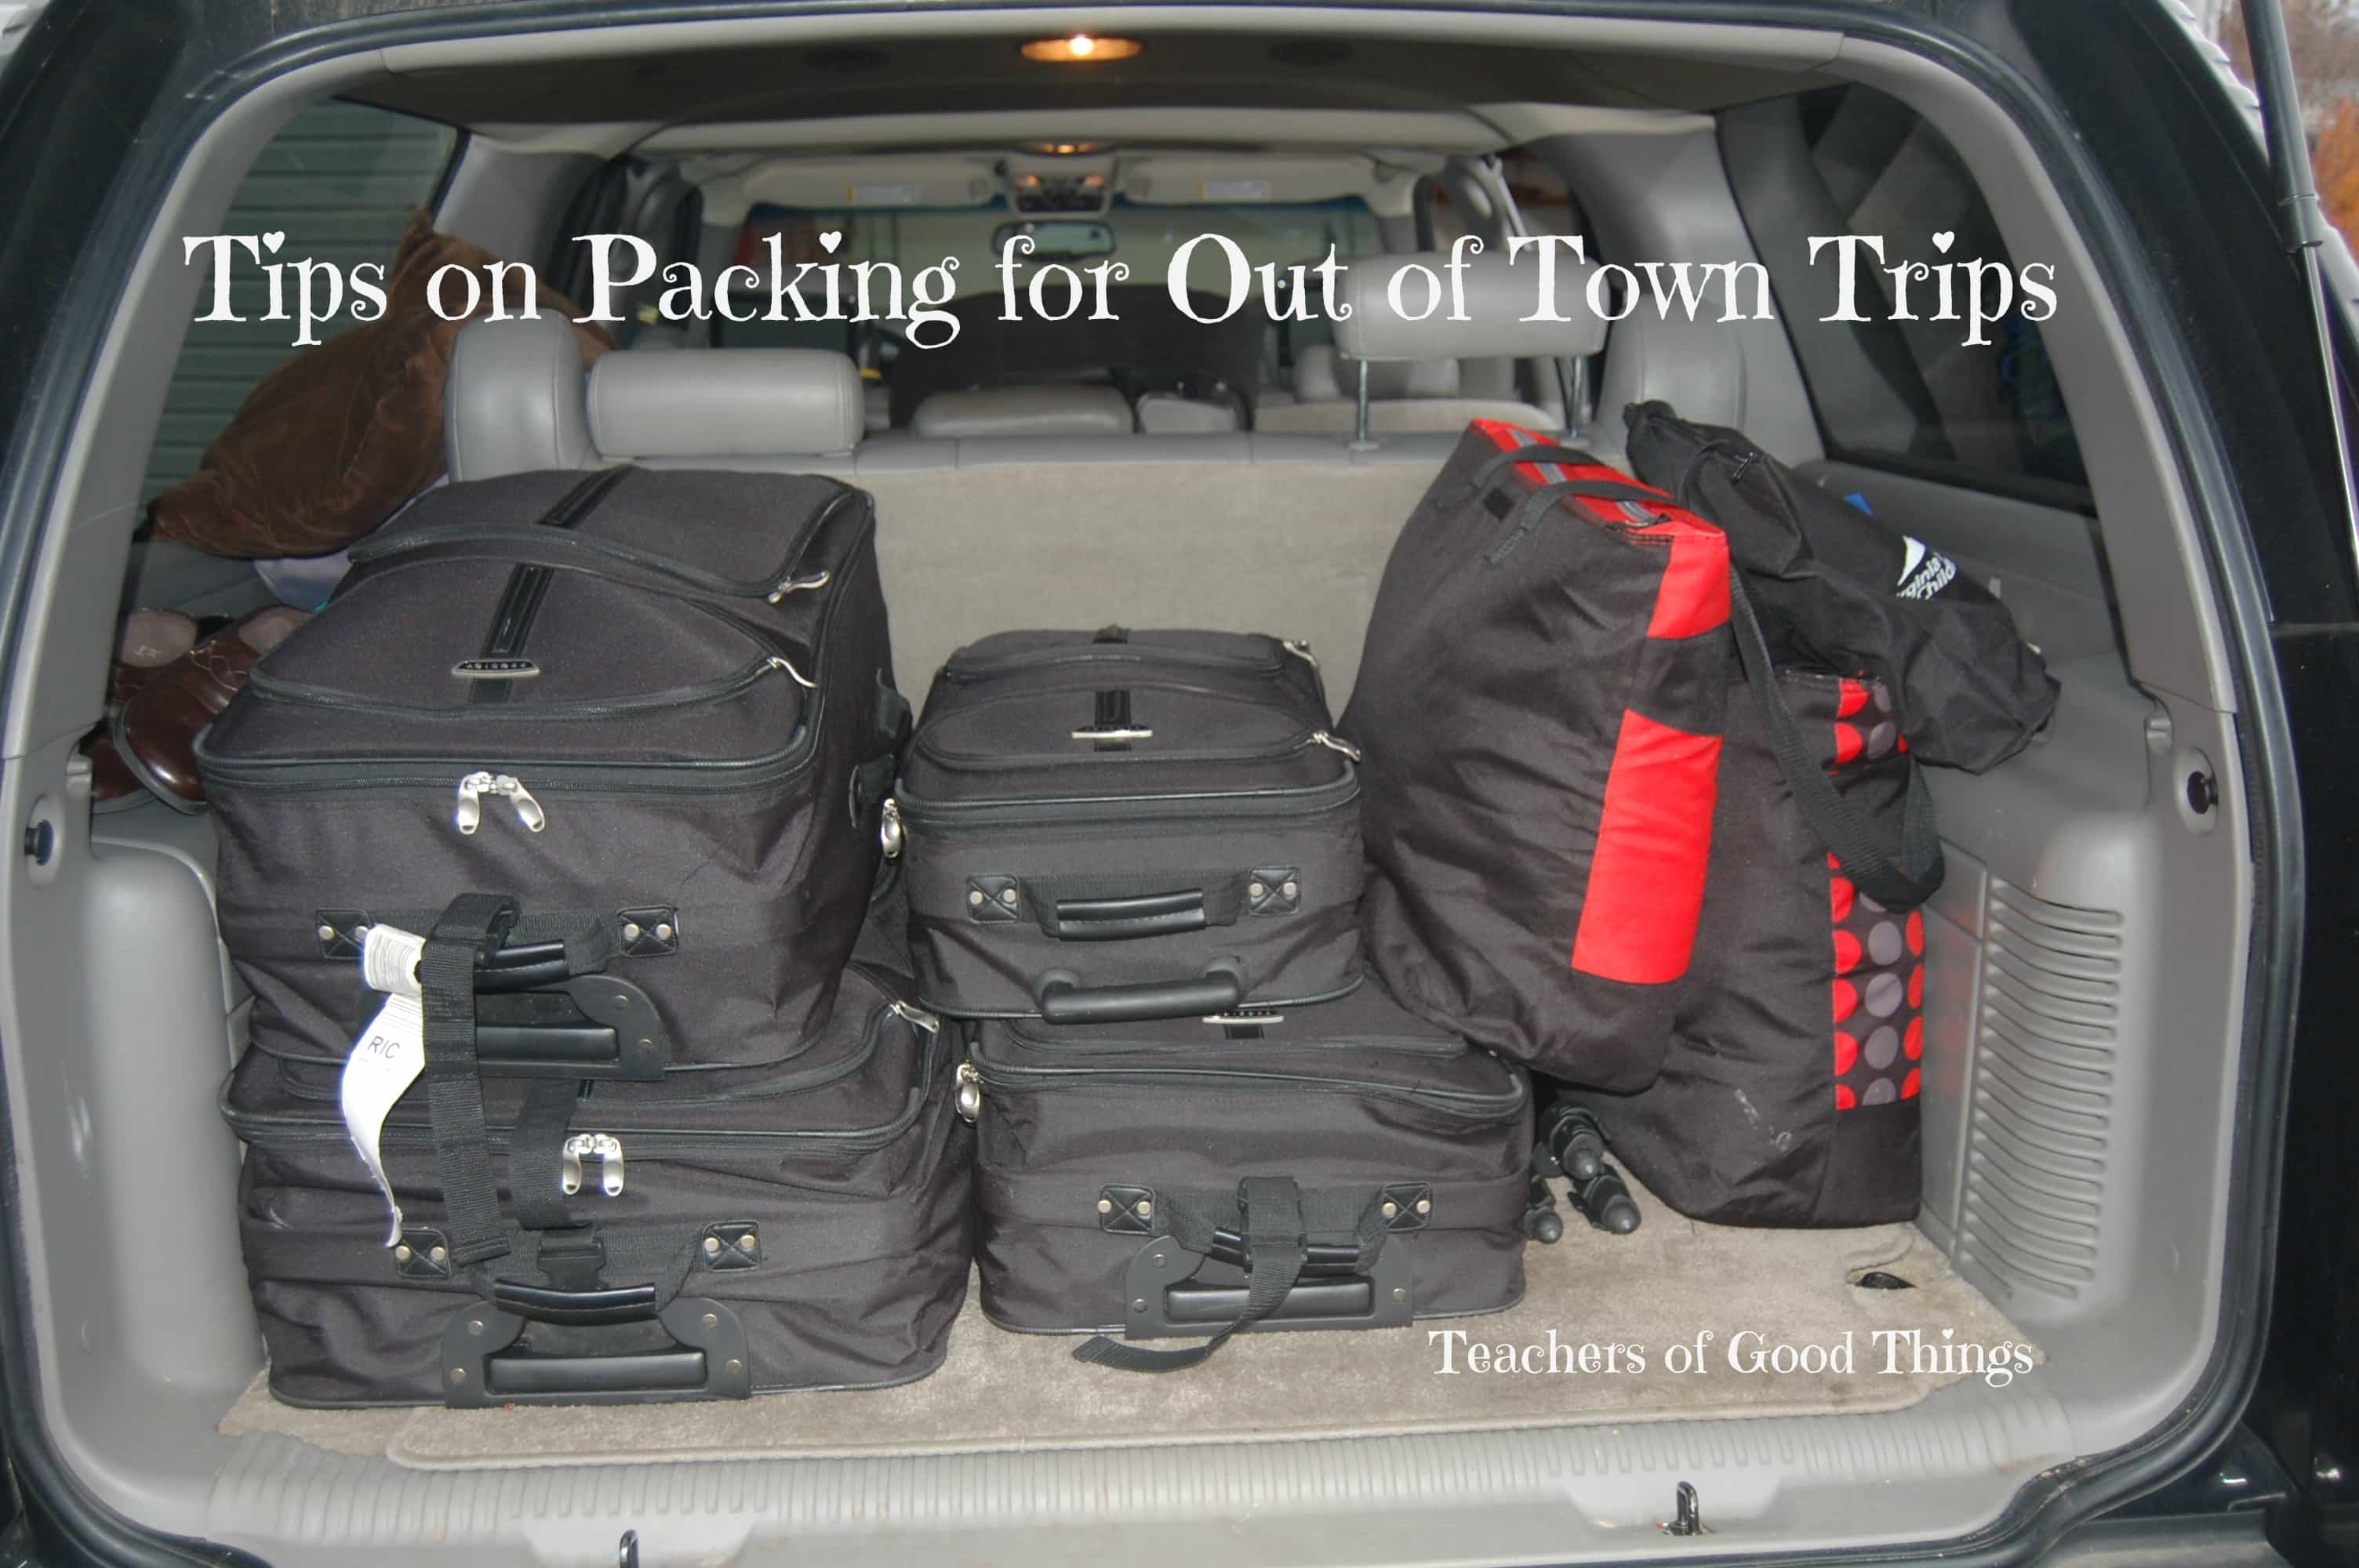 Tips on Packing for Out of Town